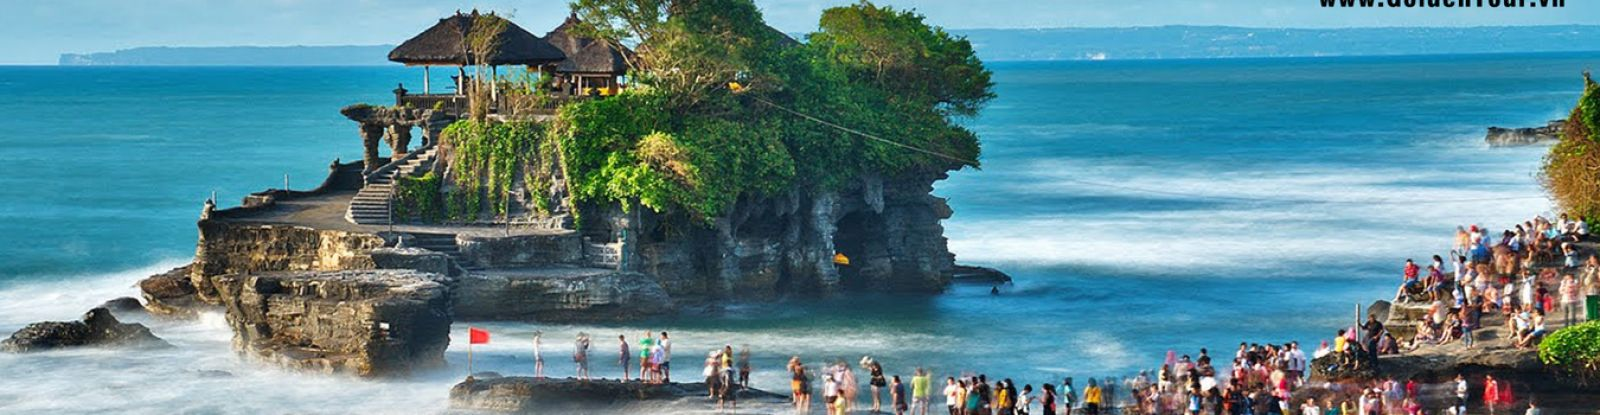 Destinations in Bali